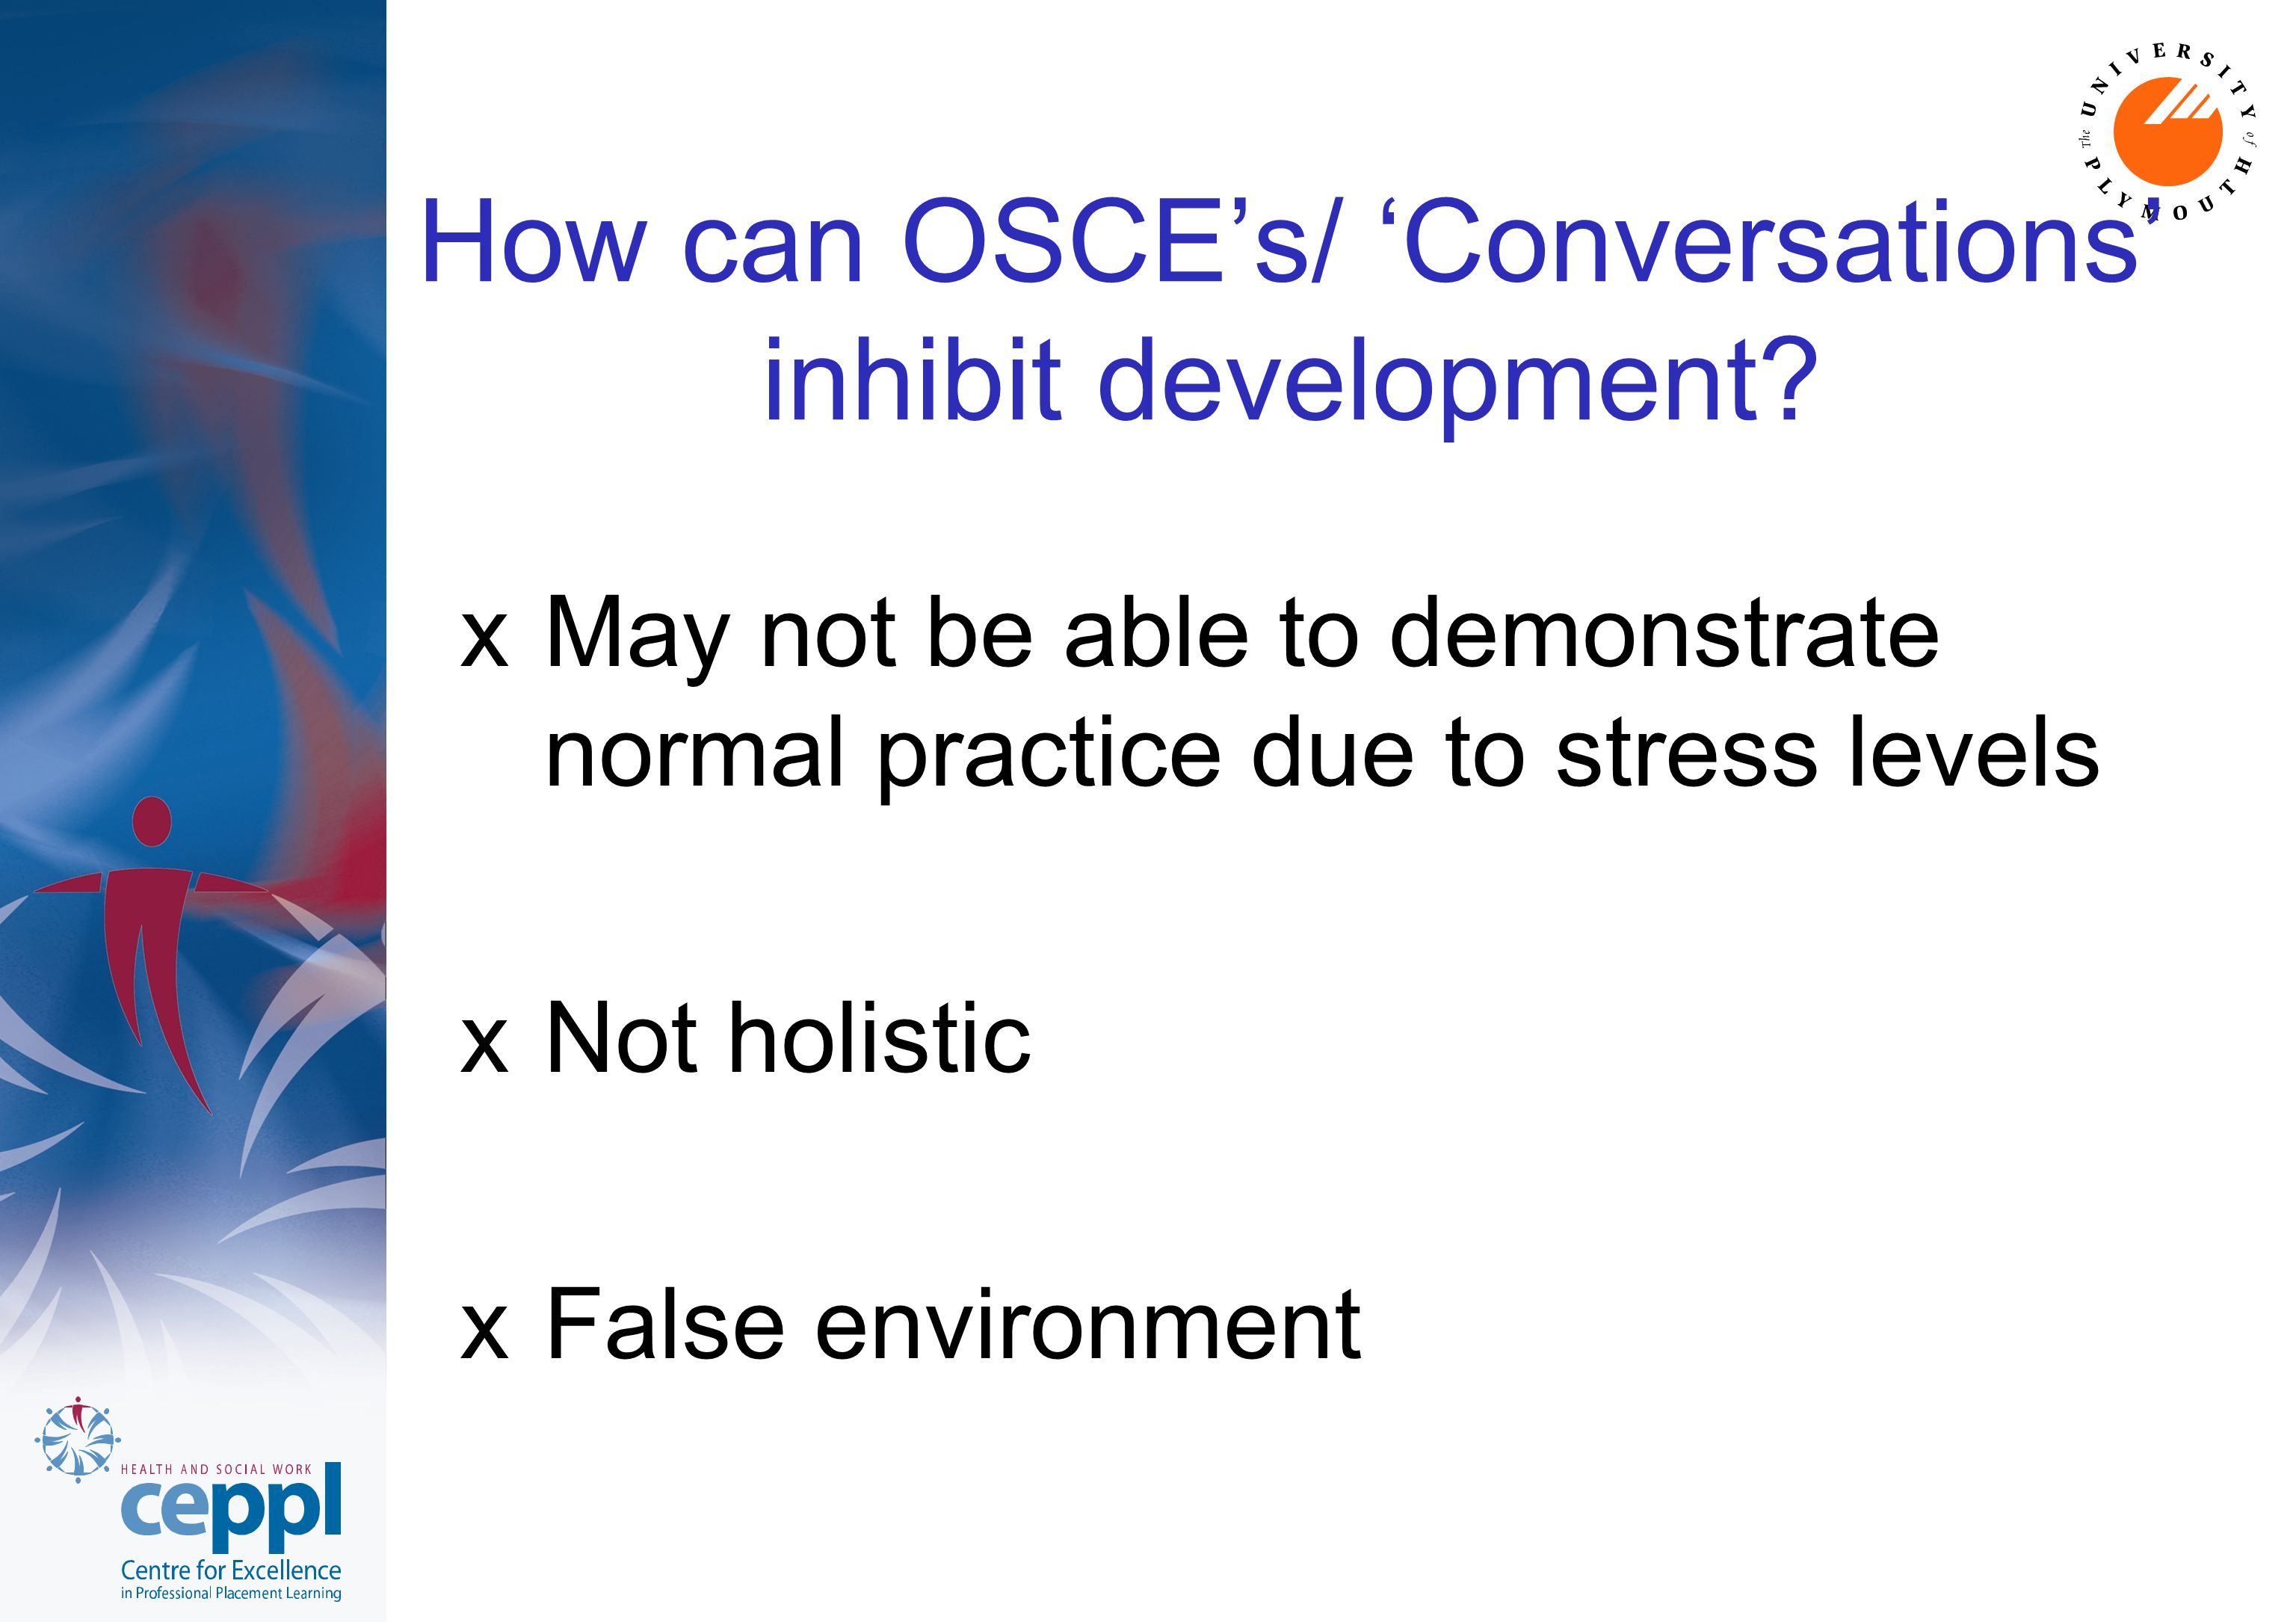 How can OSCE's/ 'Conversations' inhibit development? xMay not be able to demonstrate normal practice due to stress levels xNot holistic xFalse environ